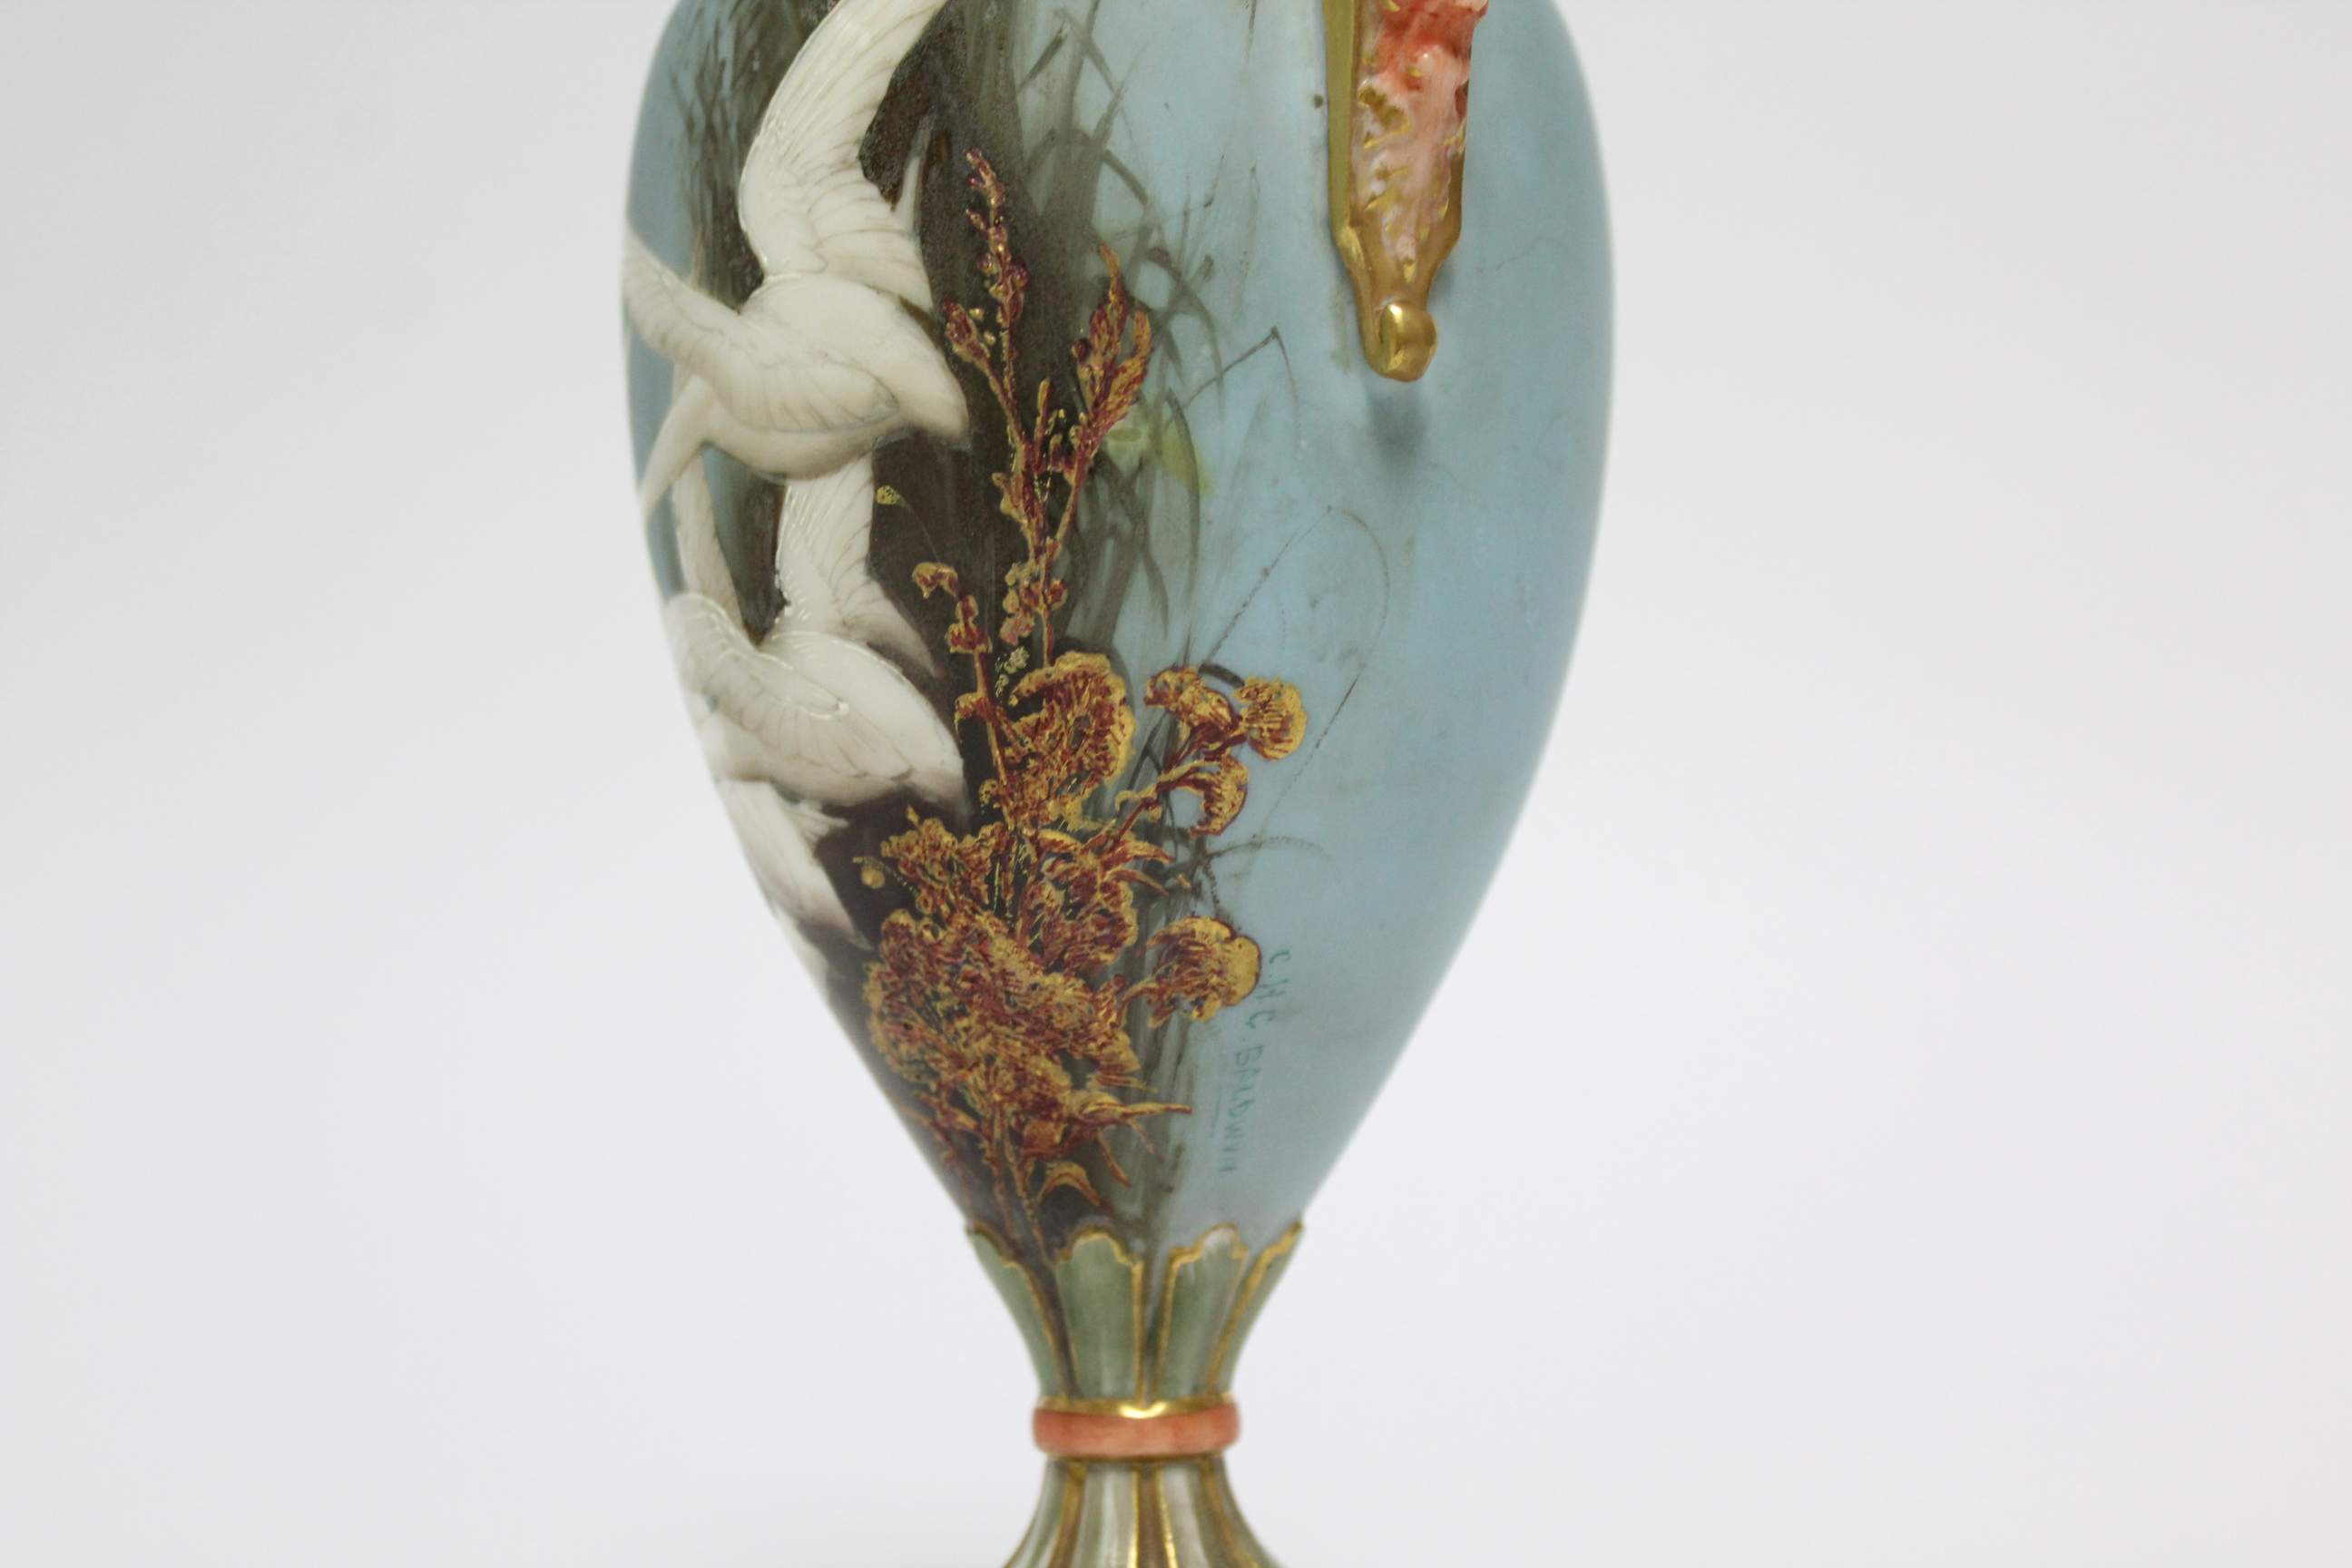 Lot 58 - A ROYAL WORCESTER PORCELAIN TWO-HANDLED VASE, the slender ovoid body painted with swans in flight by